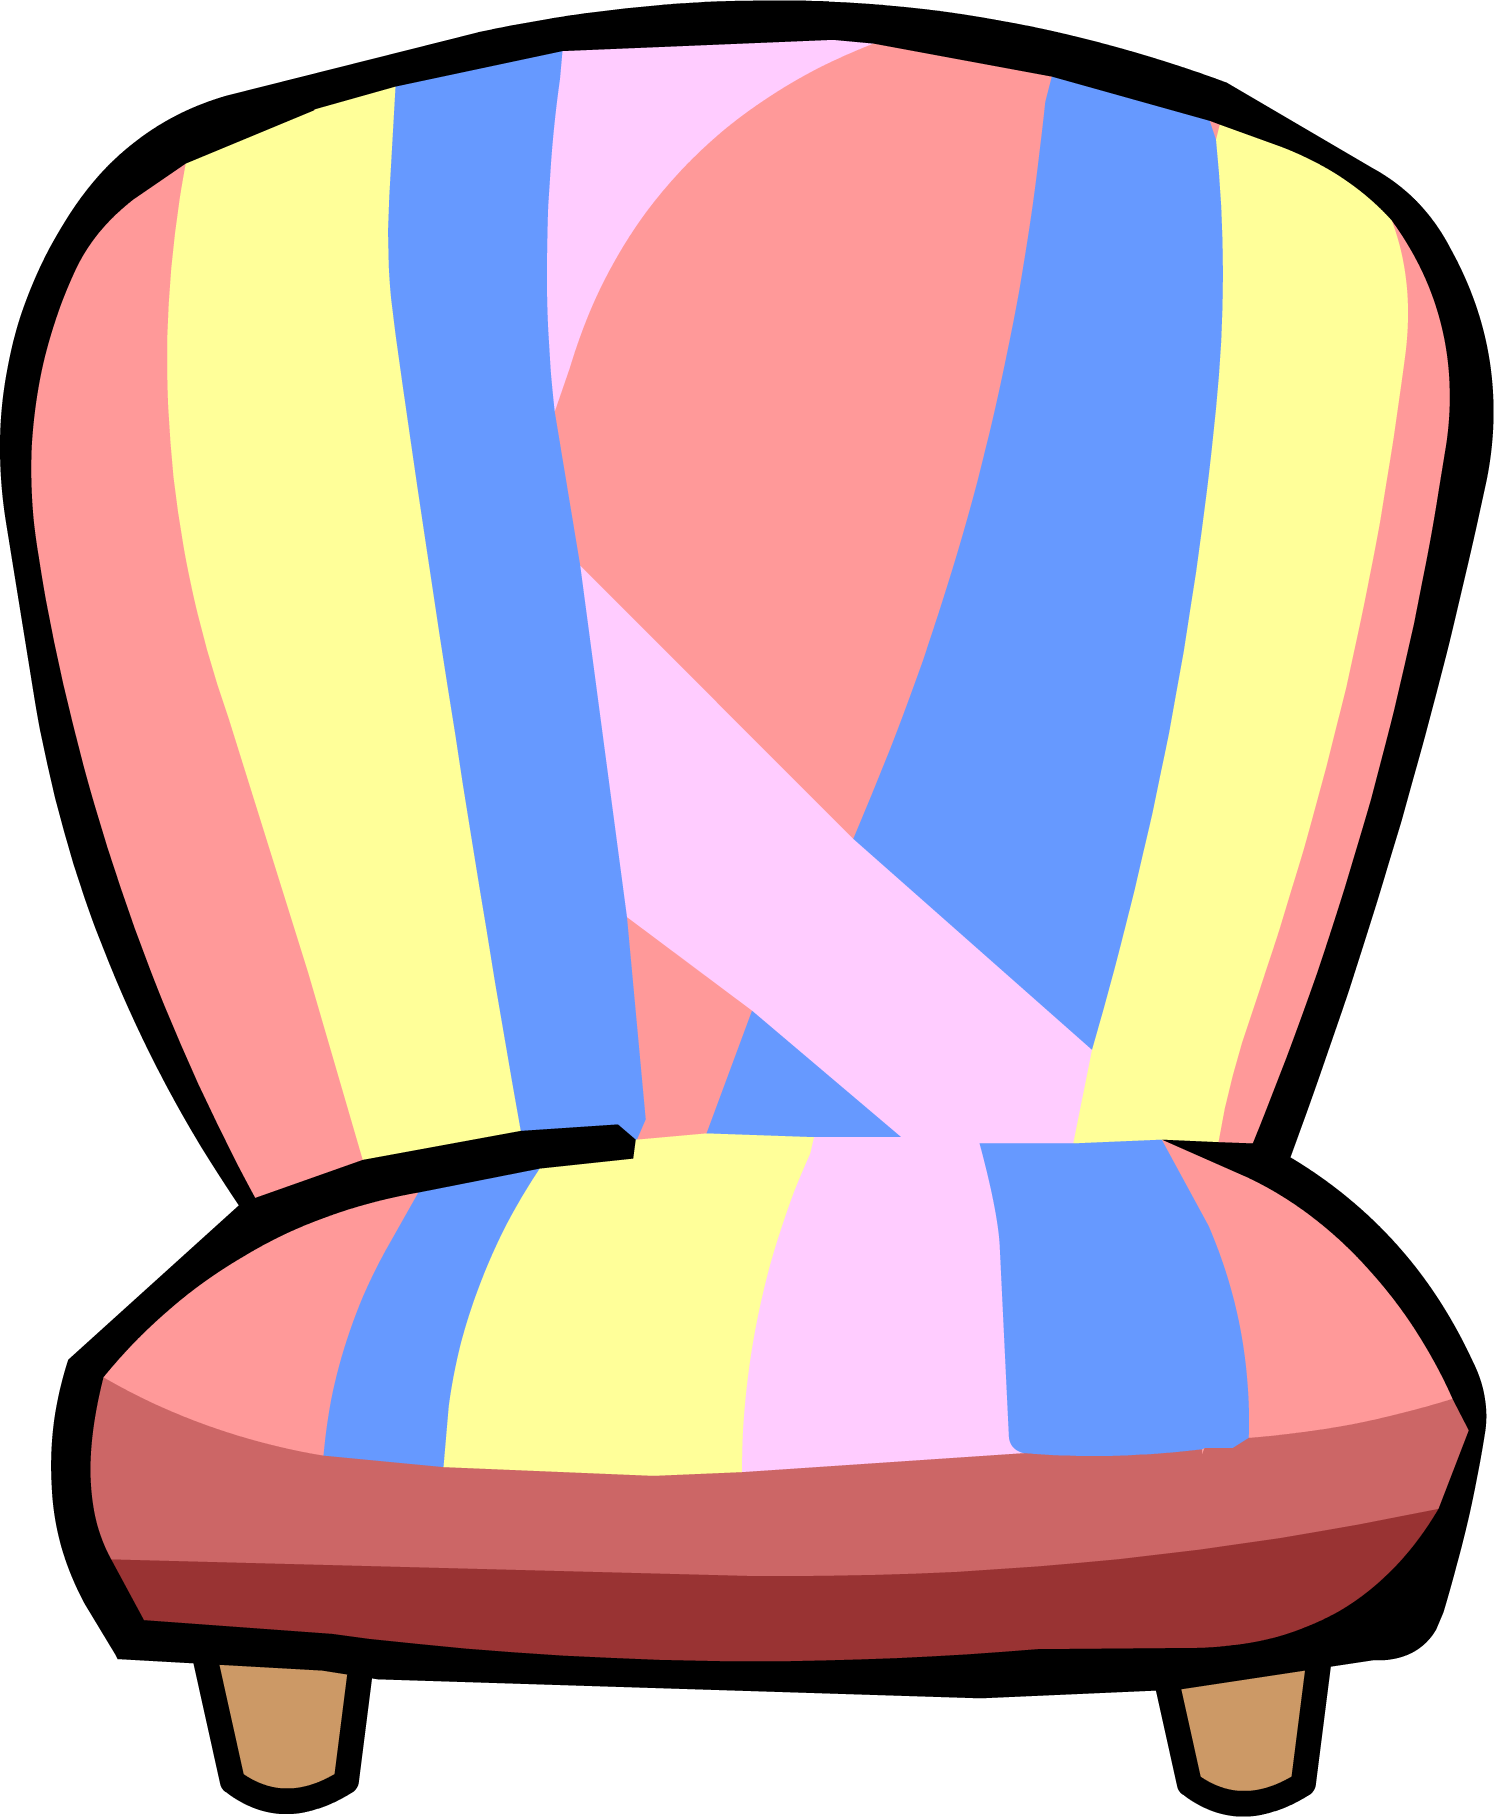 Room club penguin wiki. Mailbox clipart house furniture